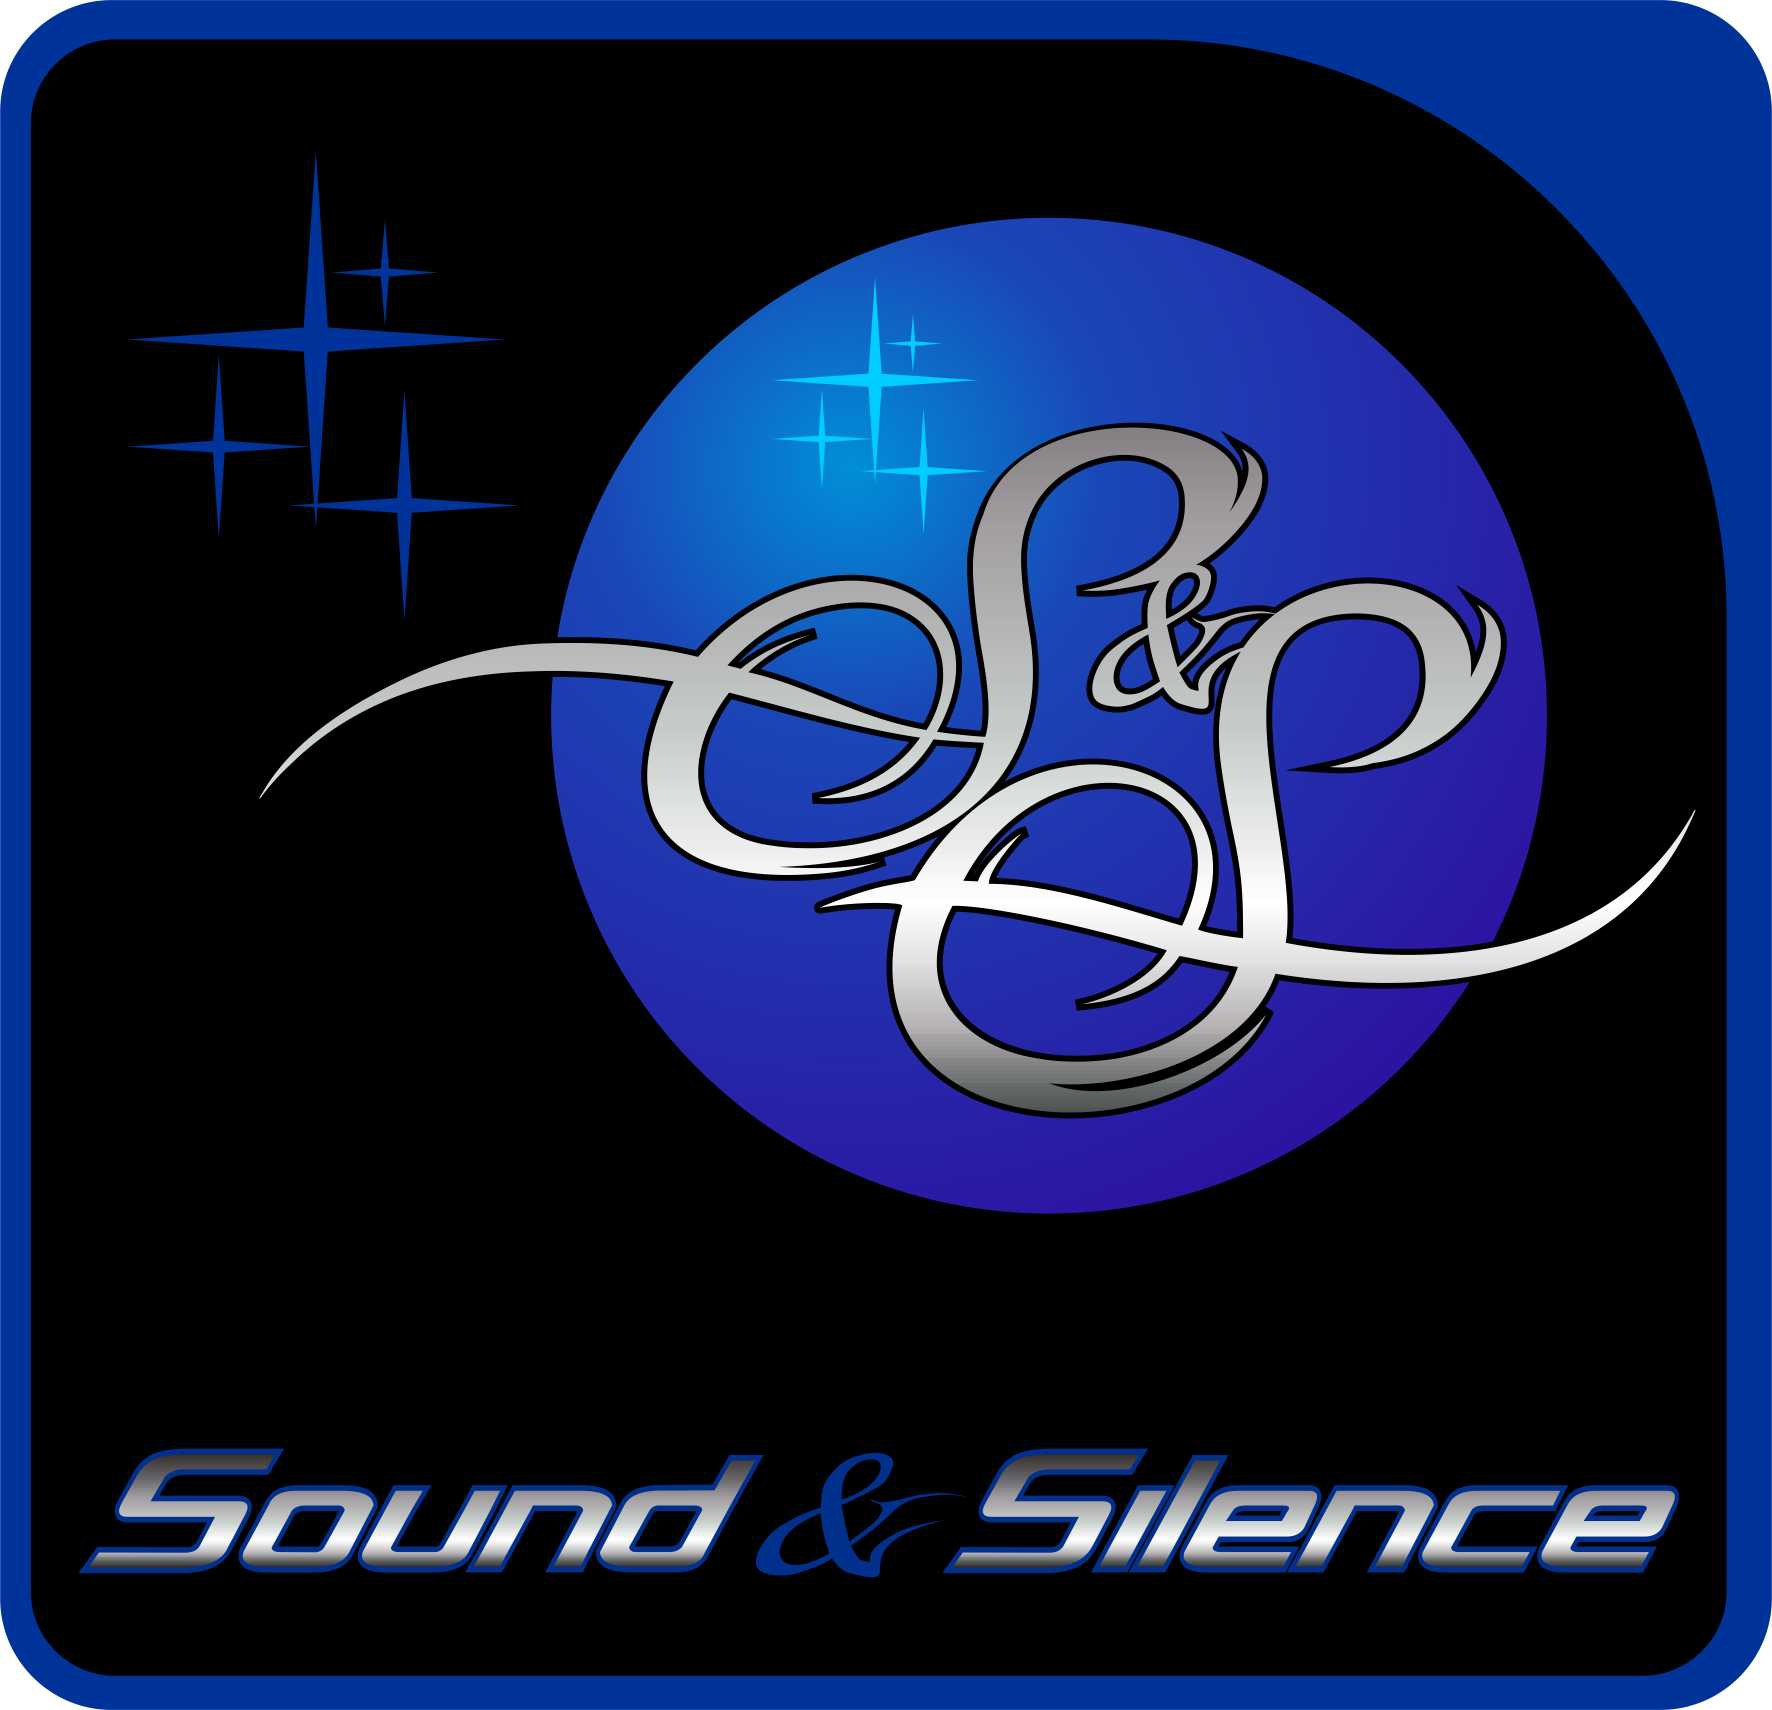 Create the next band logo for Sound and Silence